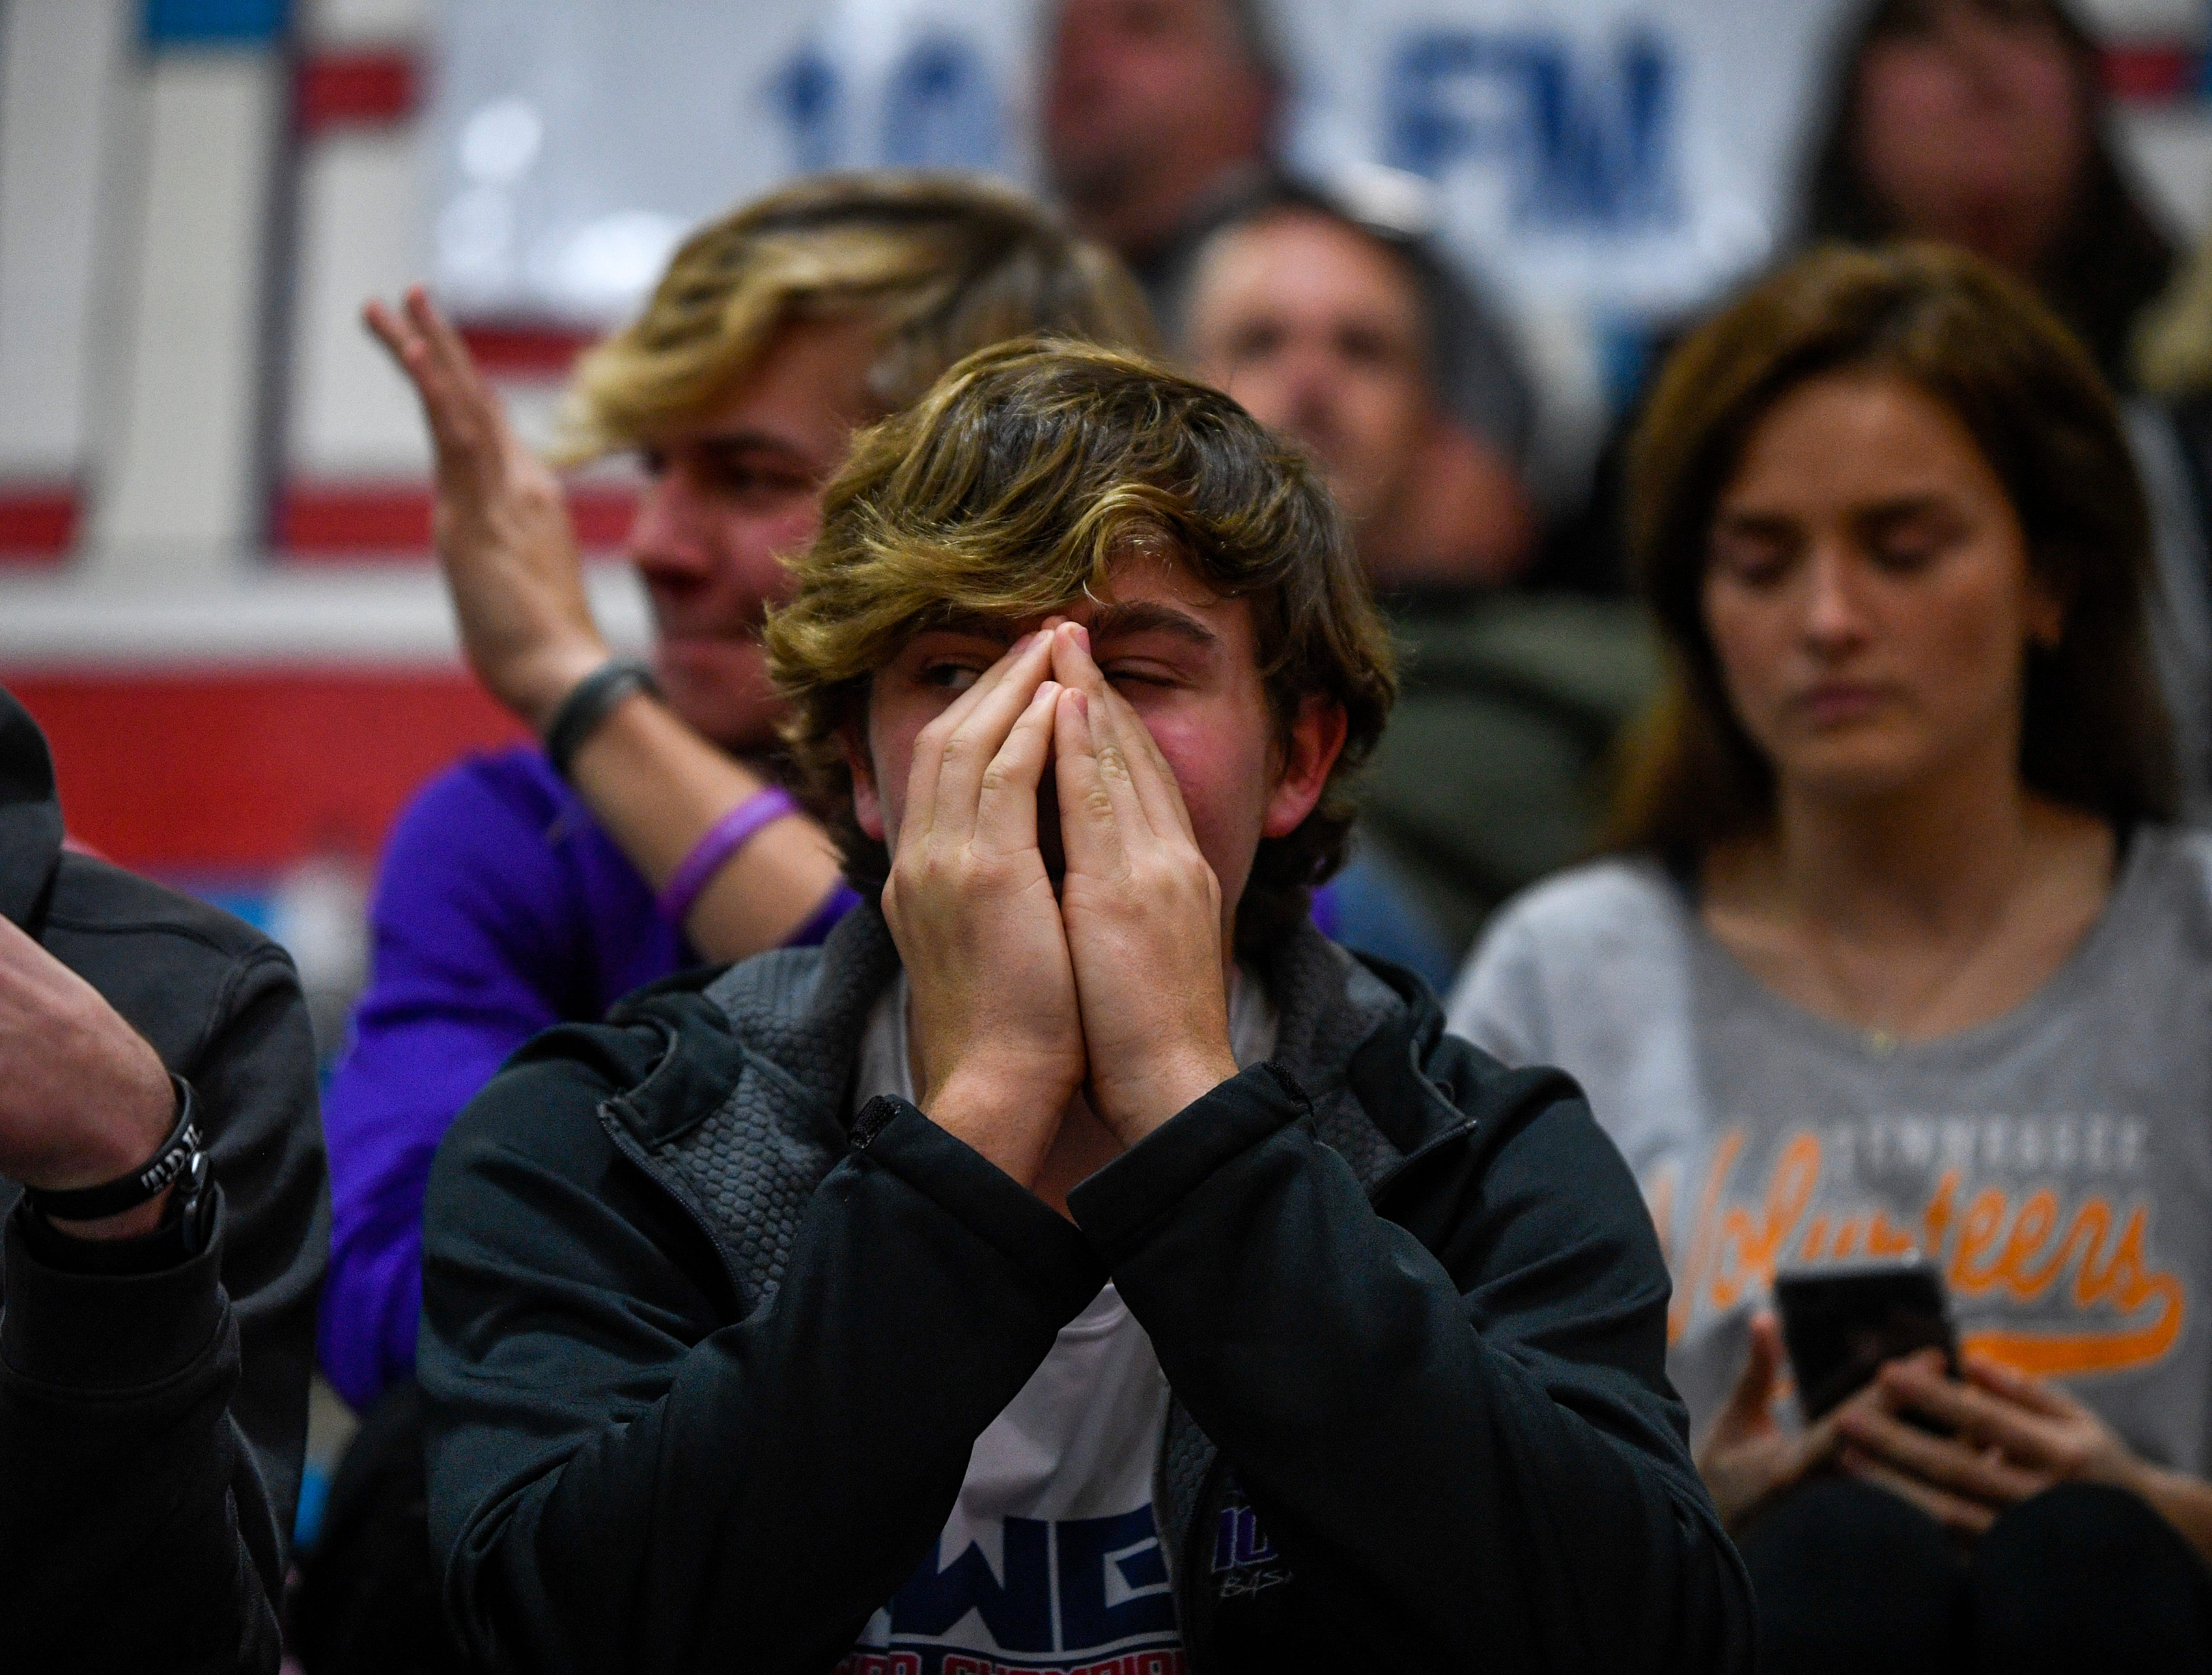 A TCA fan puts their hands over their mouth and opens one eye after Gibson County took possession during overtime in a TSSAA girls basketball game between Gibson County and Trinity Christian Academy at Gibson County High School in Dyer, Tenn., on Friday, Jan. 11, 2019.